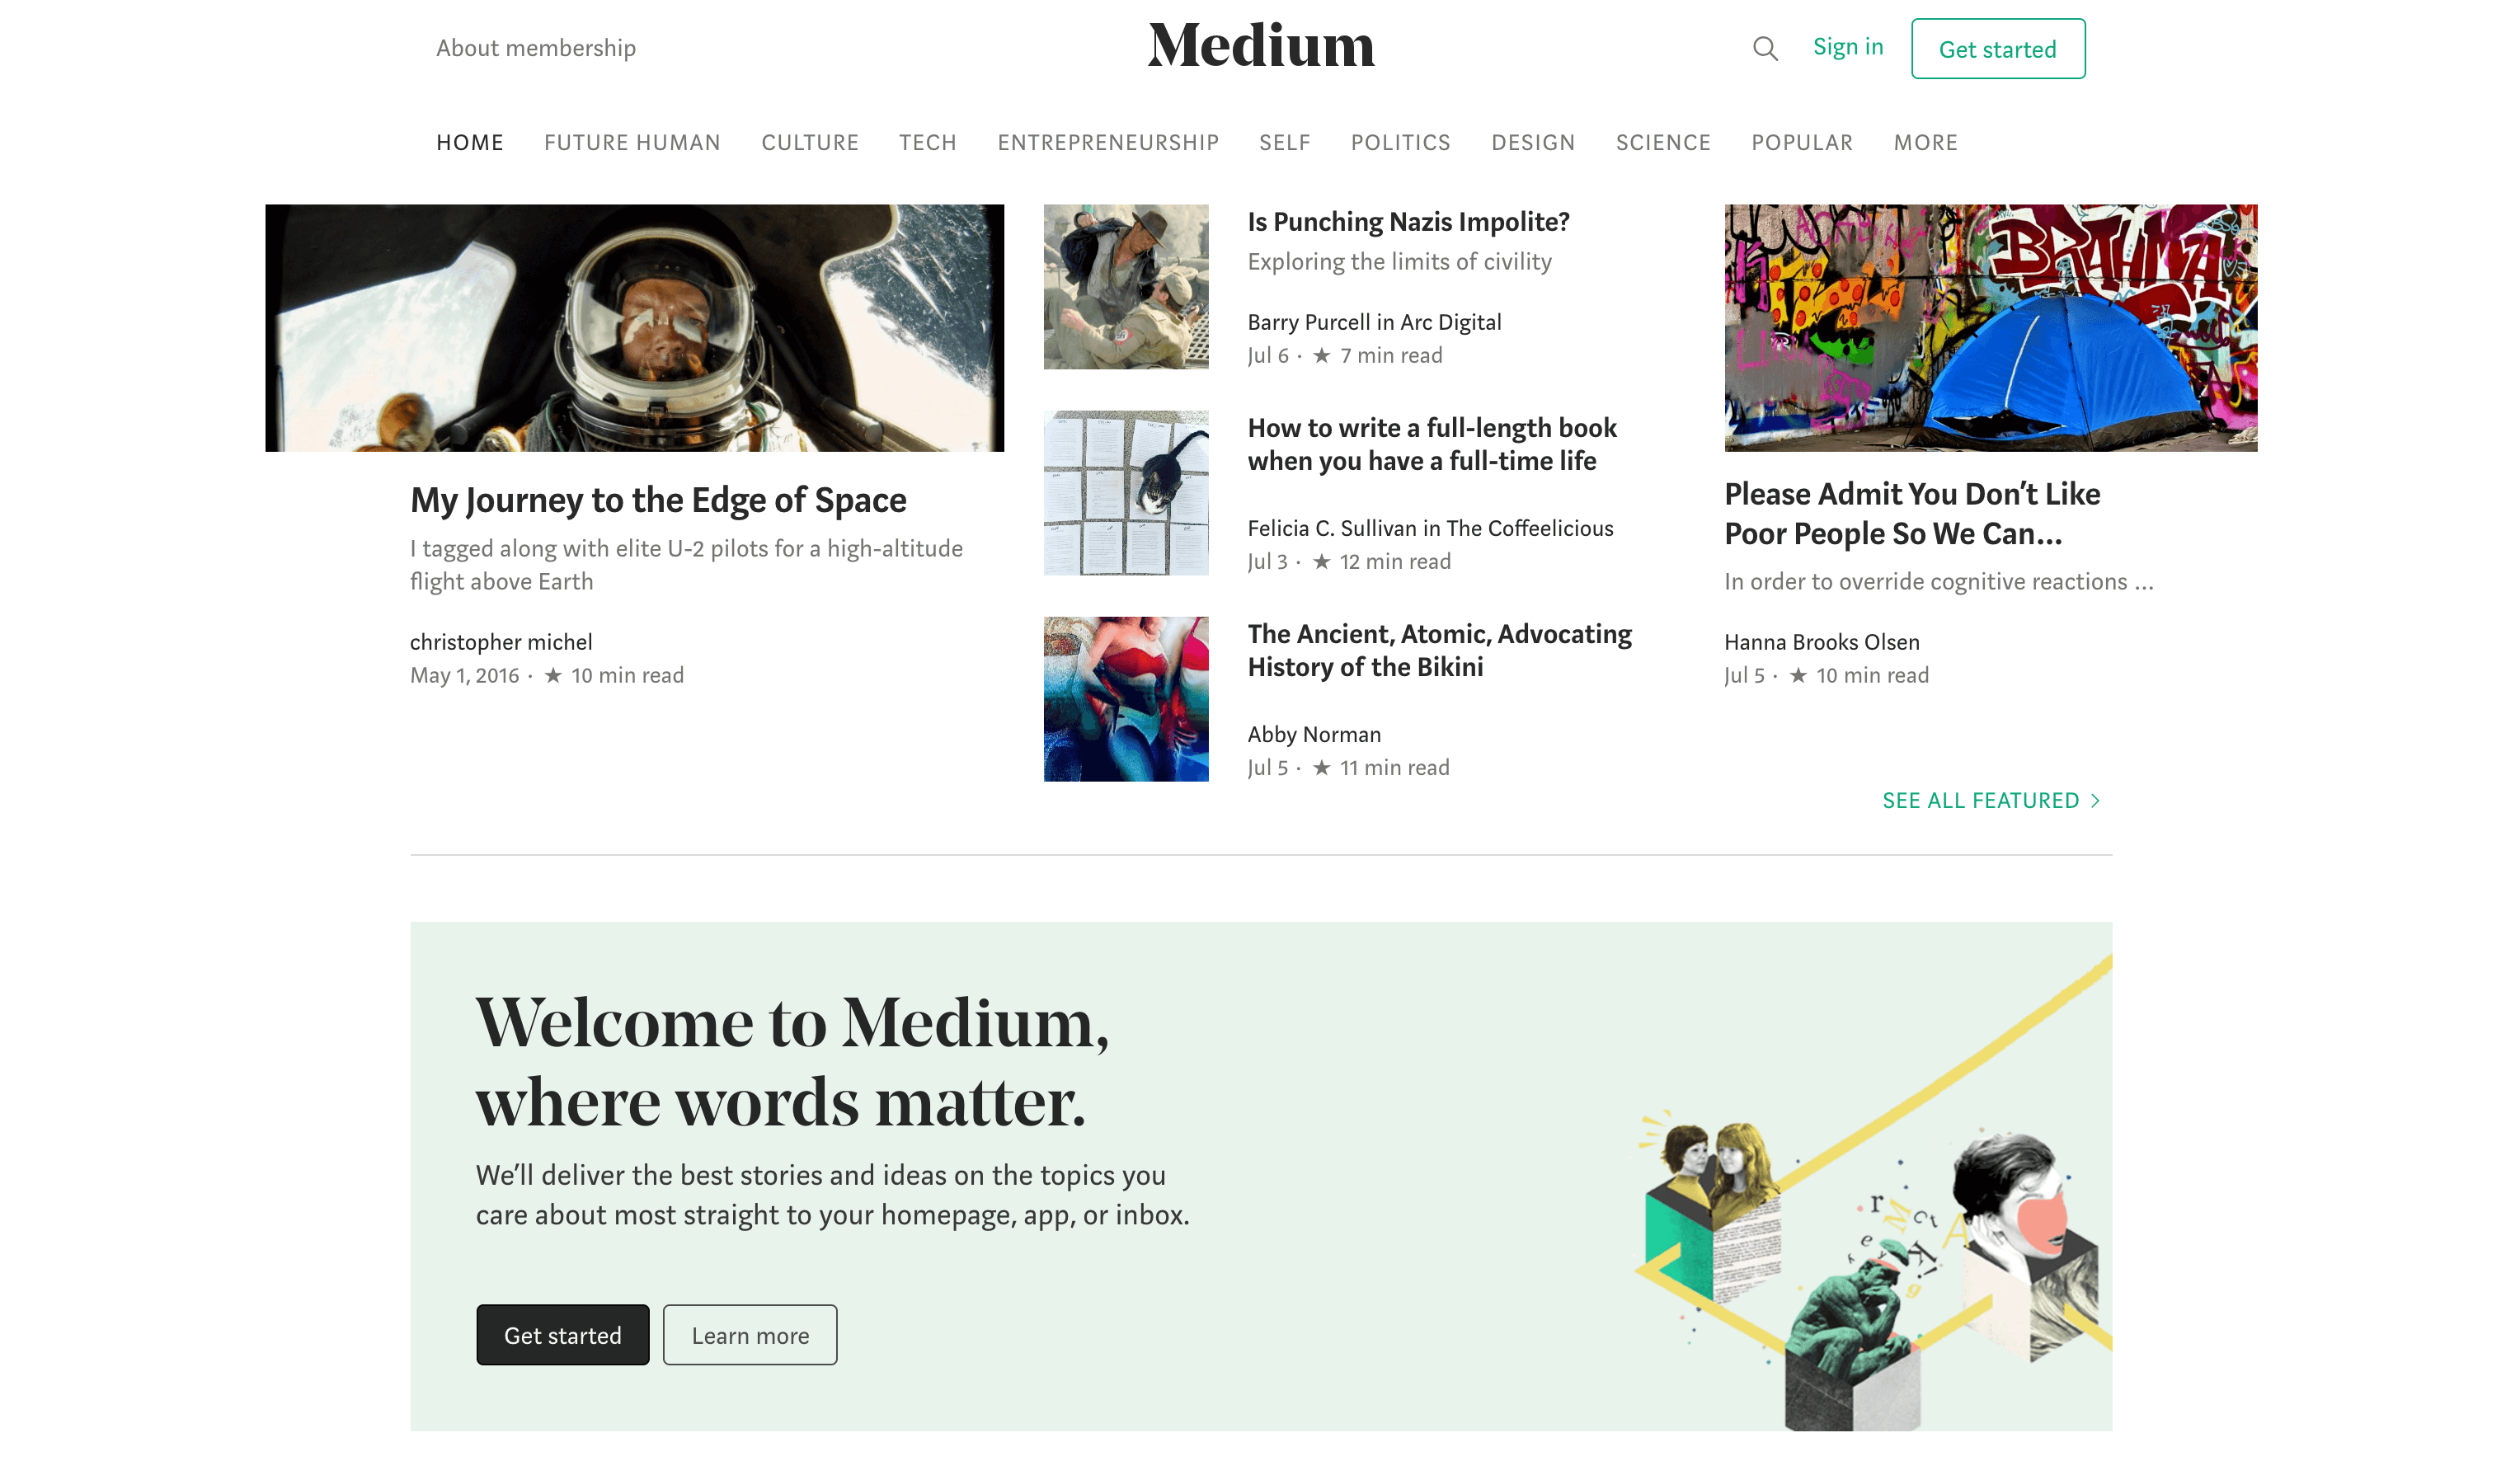 The Medium home page.